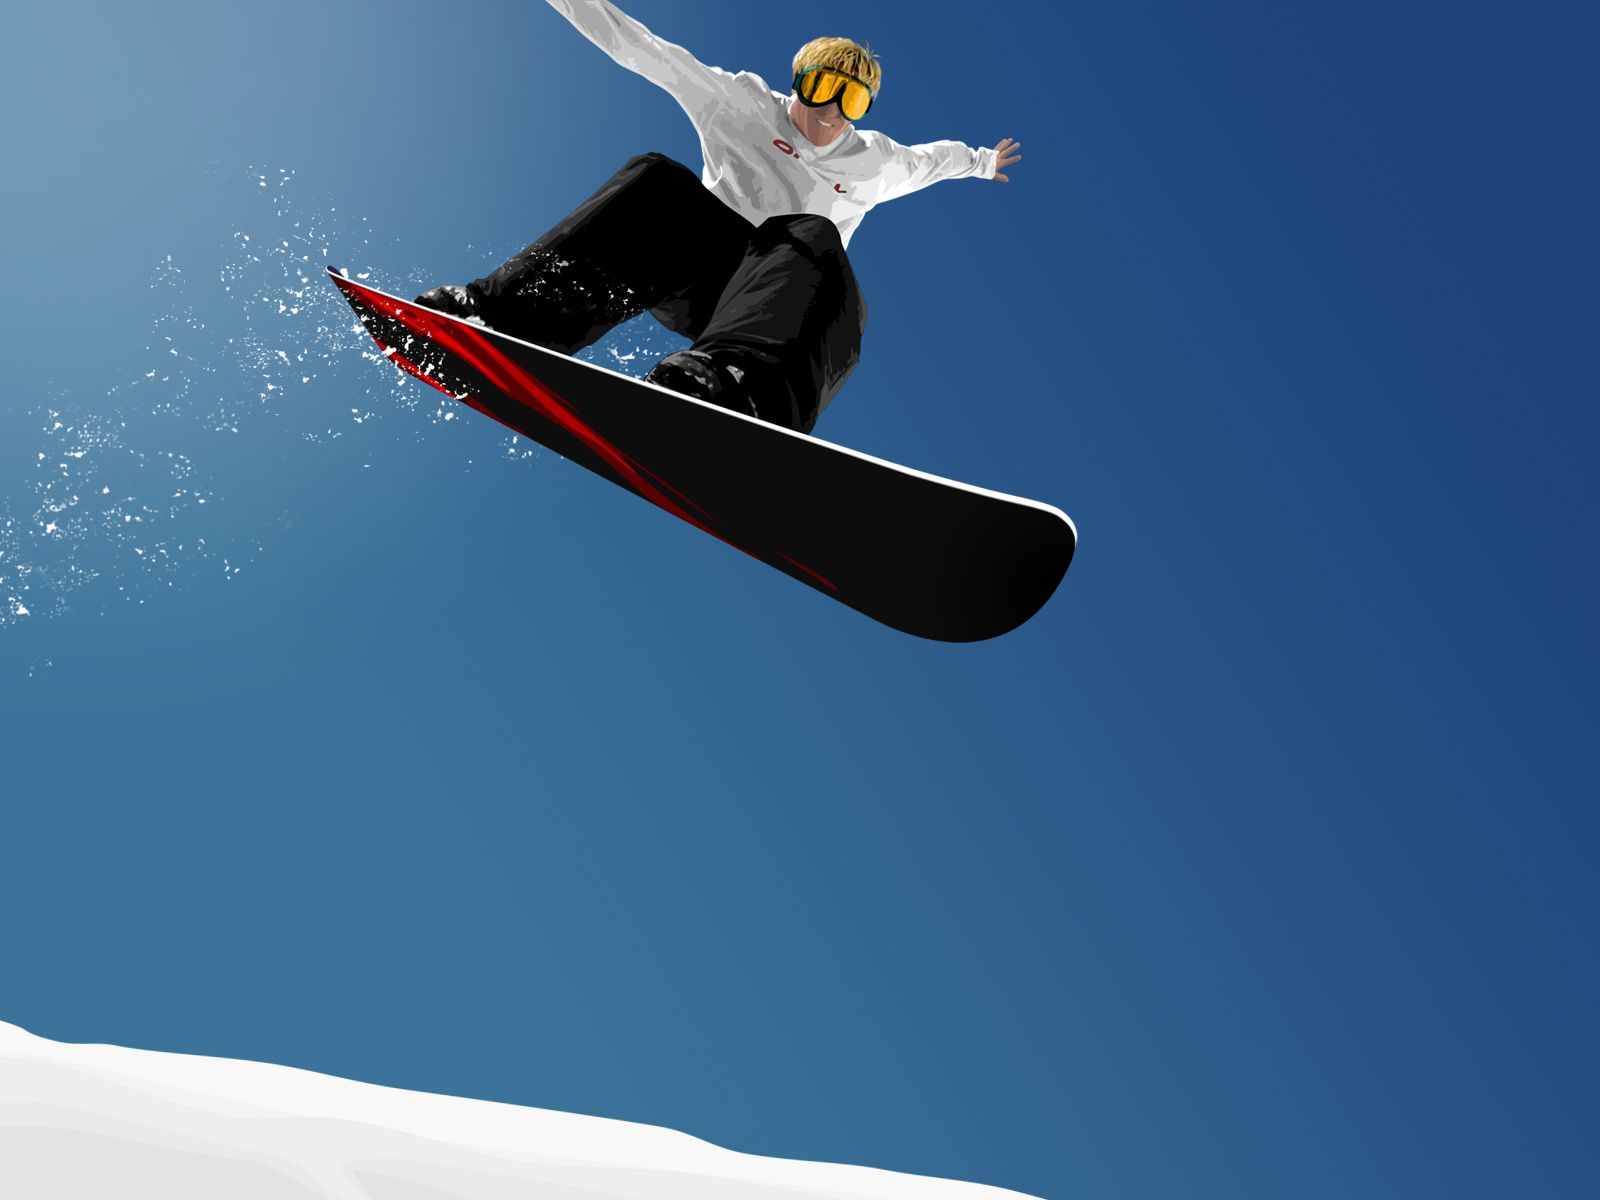 1600x1200 snow boarding | Snowboarding Ski Holidays | Skiing and Snowboarding ...